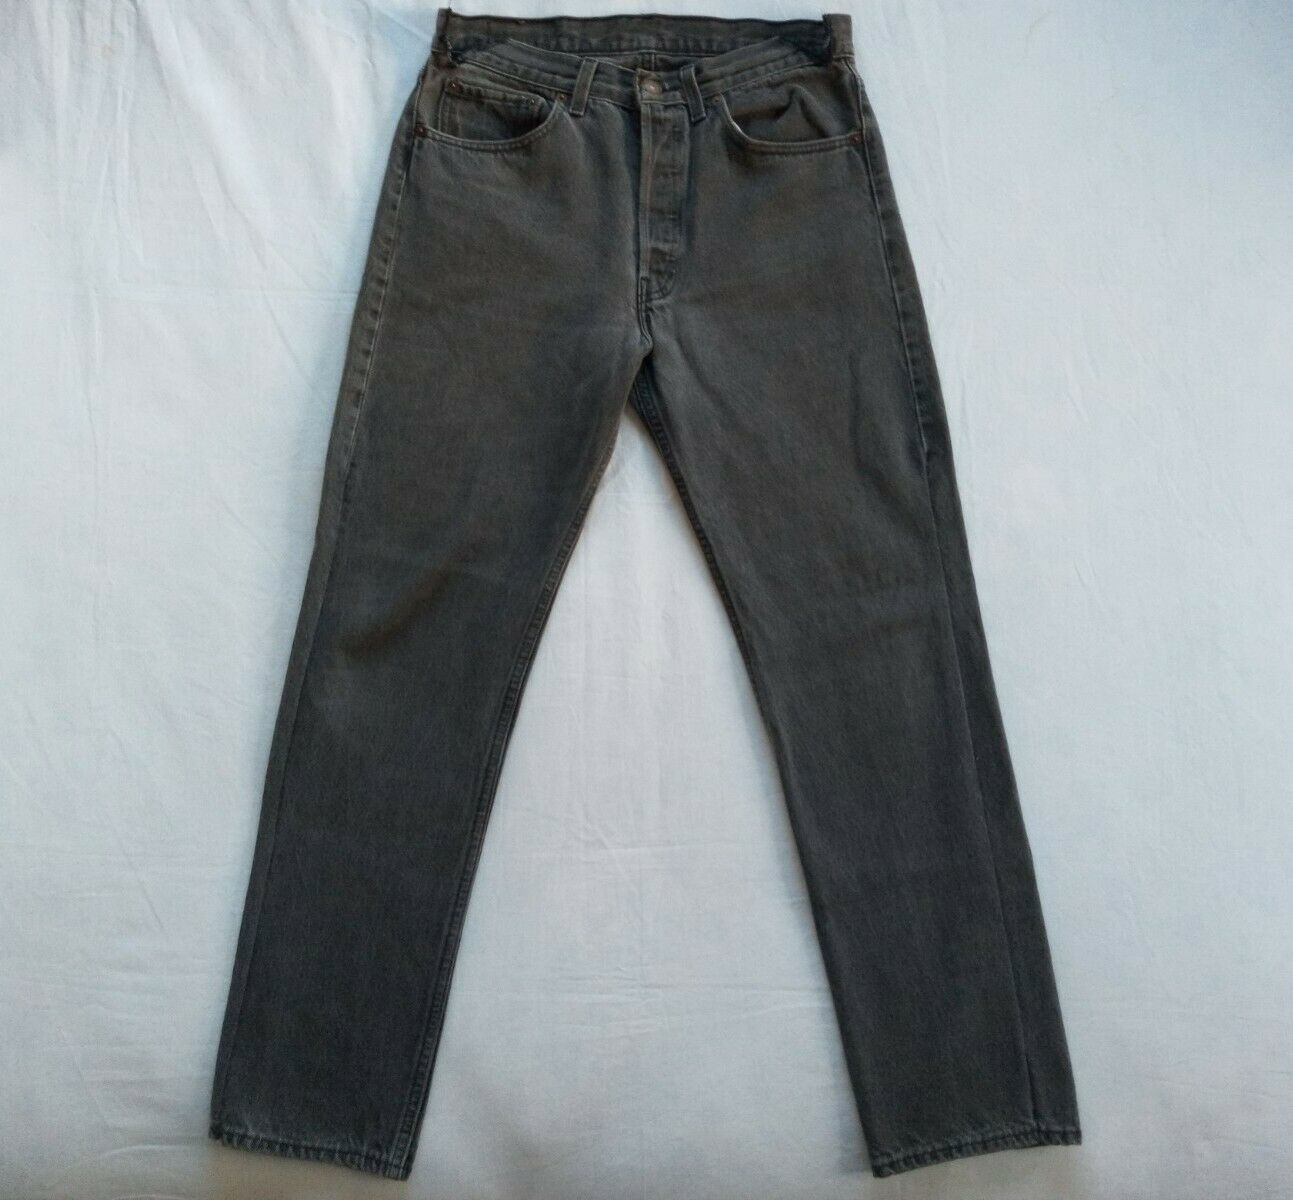 Levi's 501 Made In USA 1990's Black Jeans Size 32… - image 1